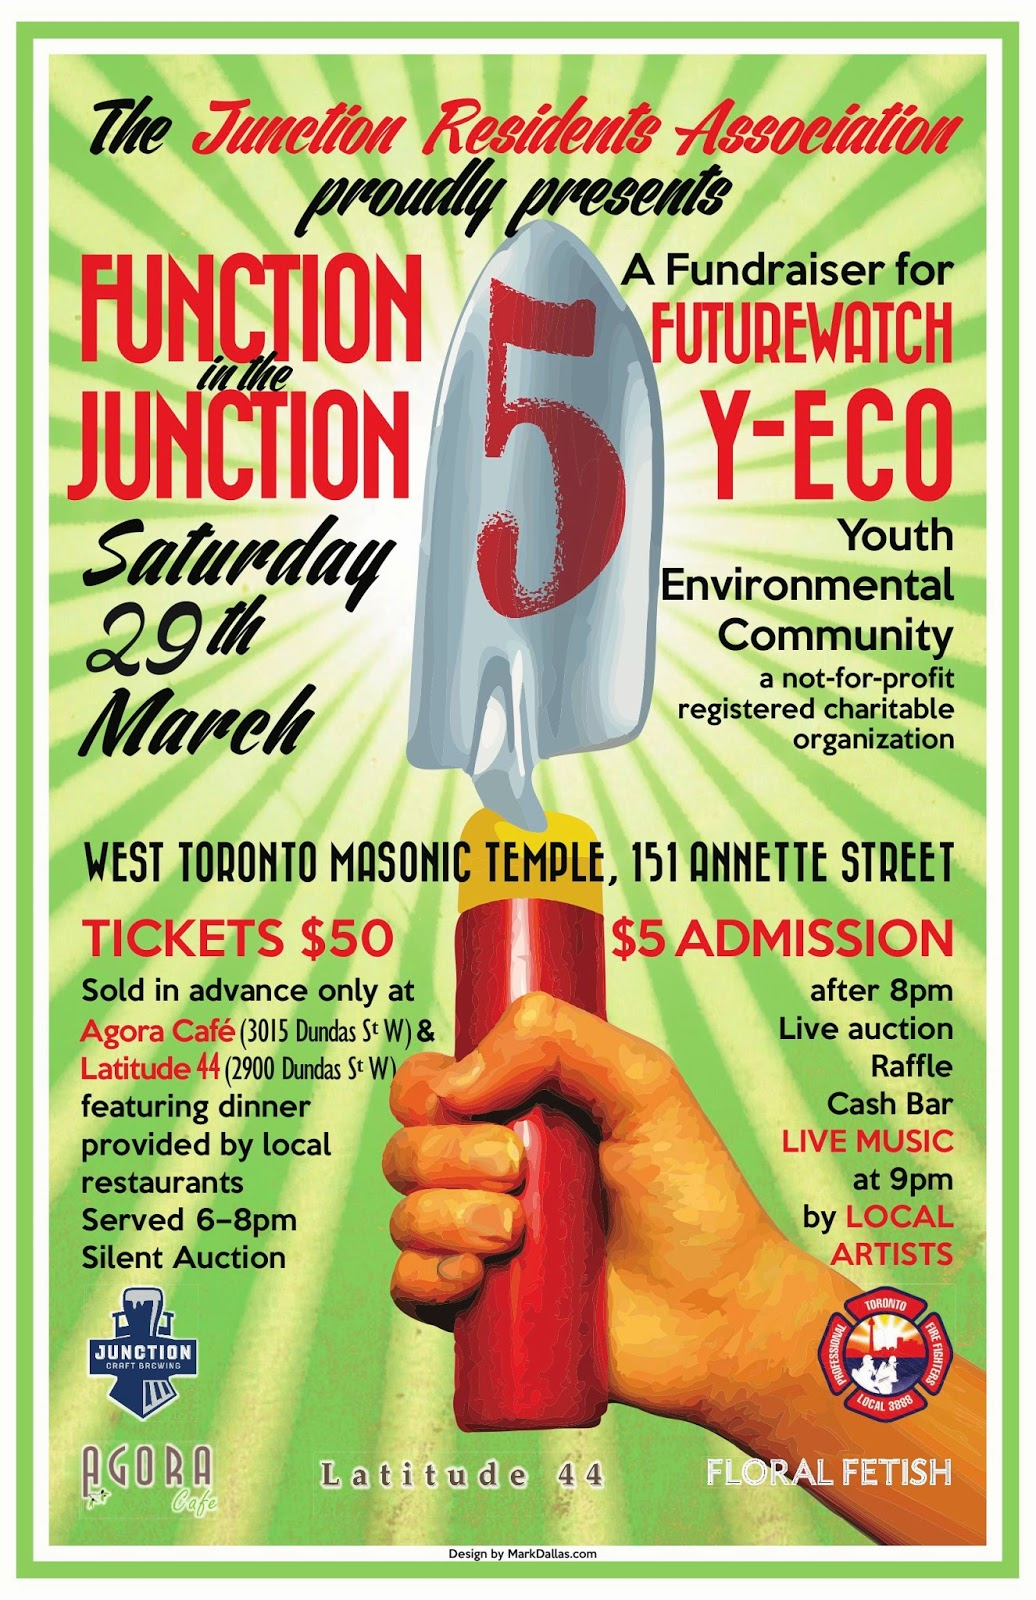 Function in the Junction - fundraiser for FutureWatch,   Saturday, March 29, 2014, West Toronto Masonic Temple, Toronto